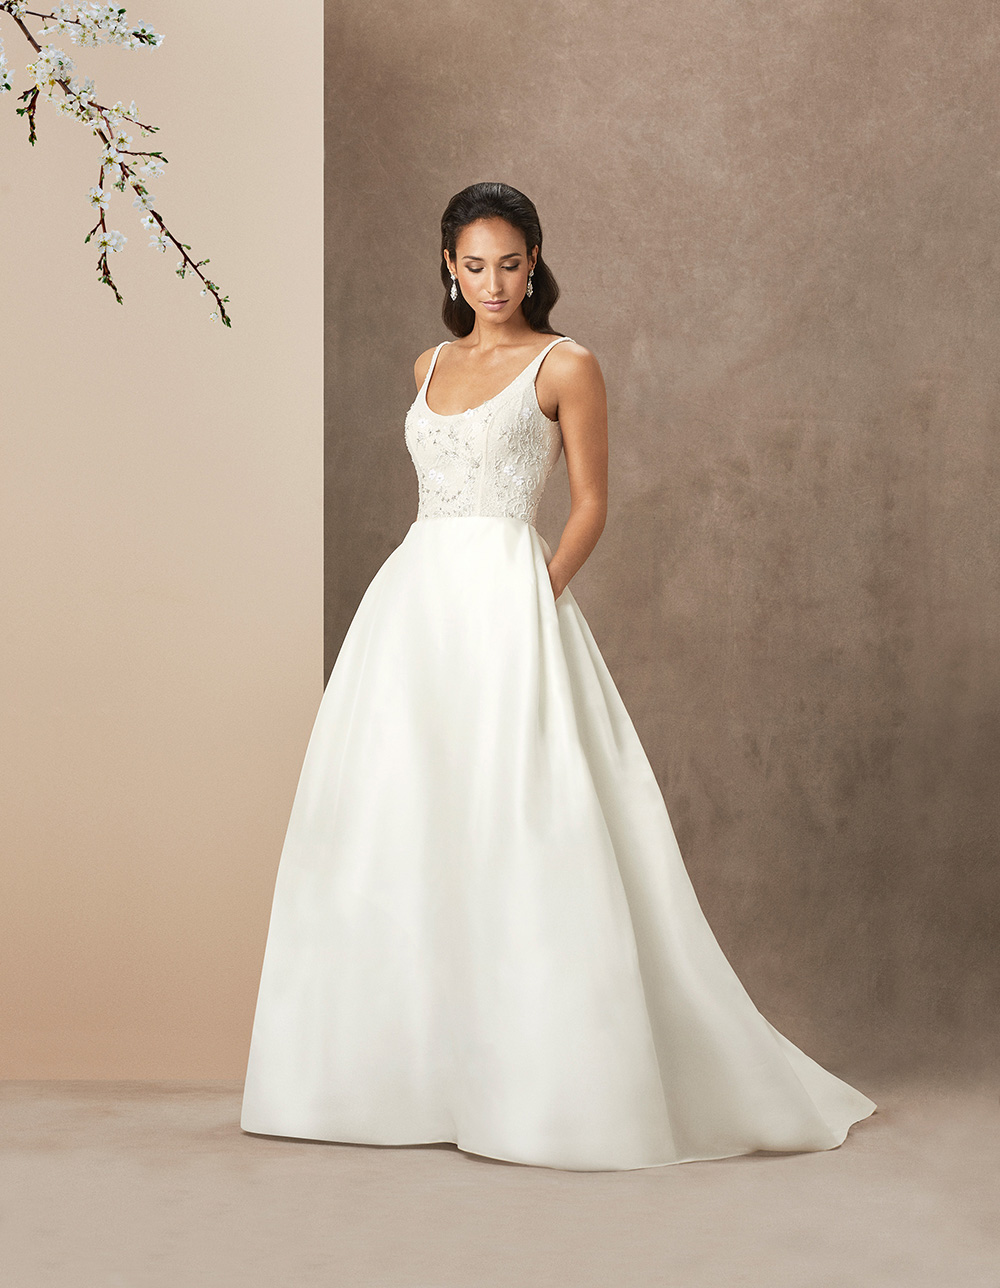 Chantel luxury wedding gown by Caroline Castigliano